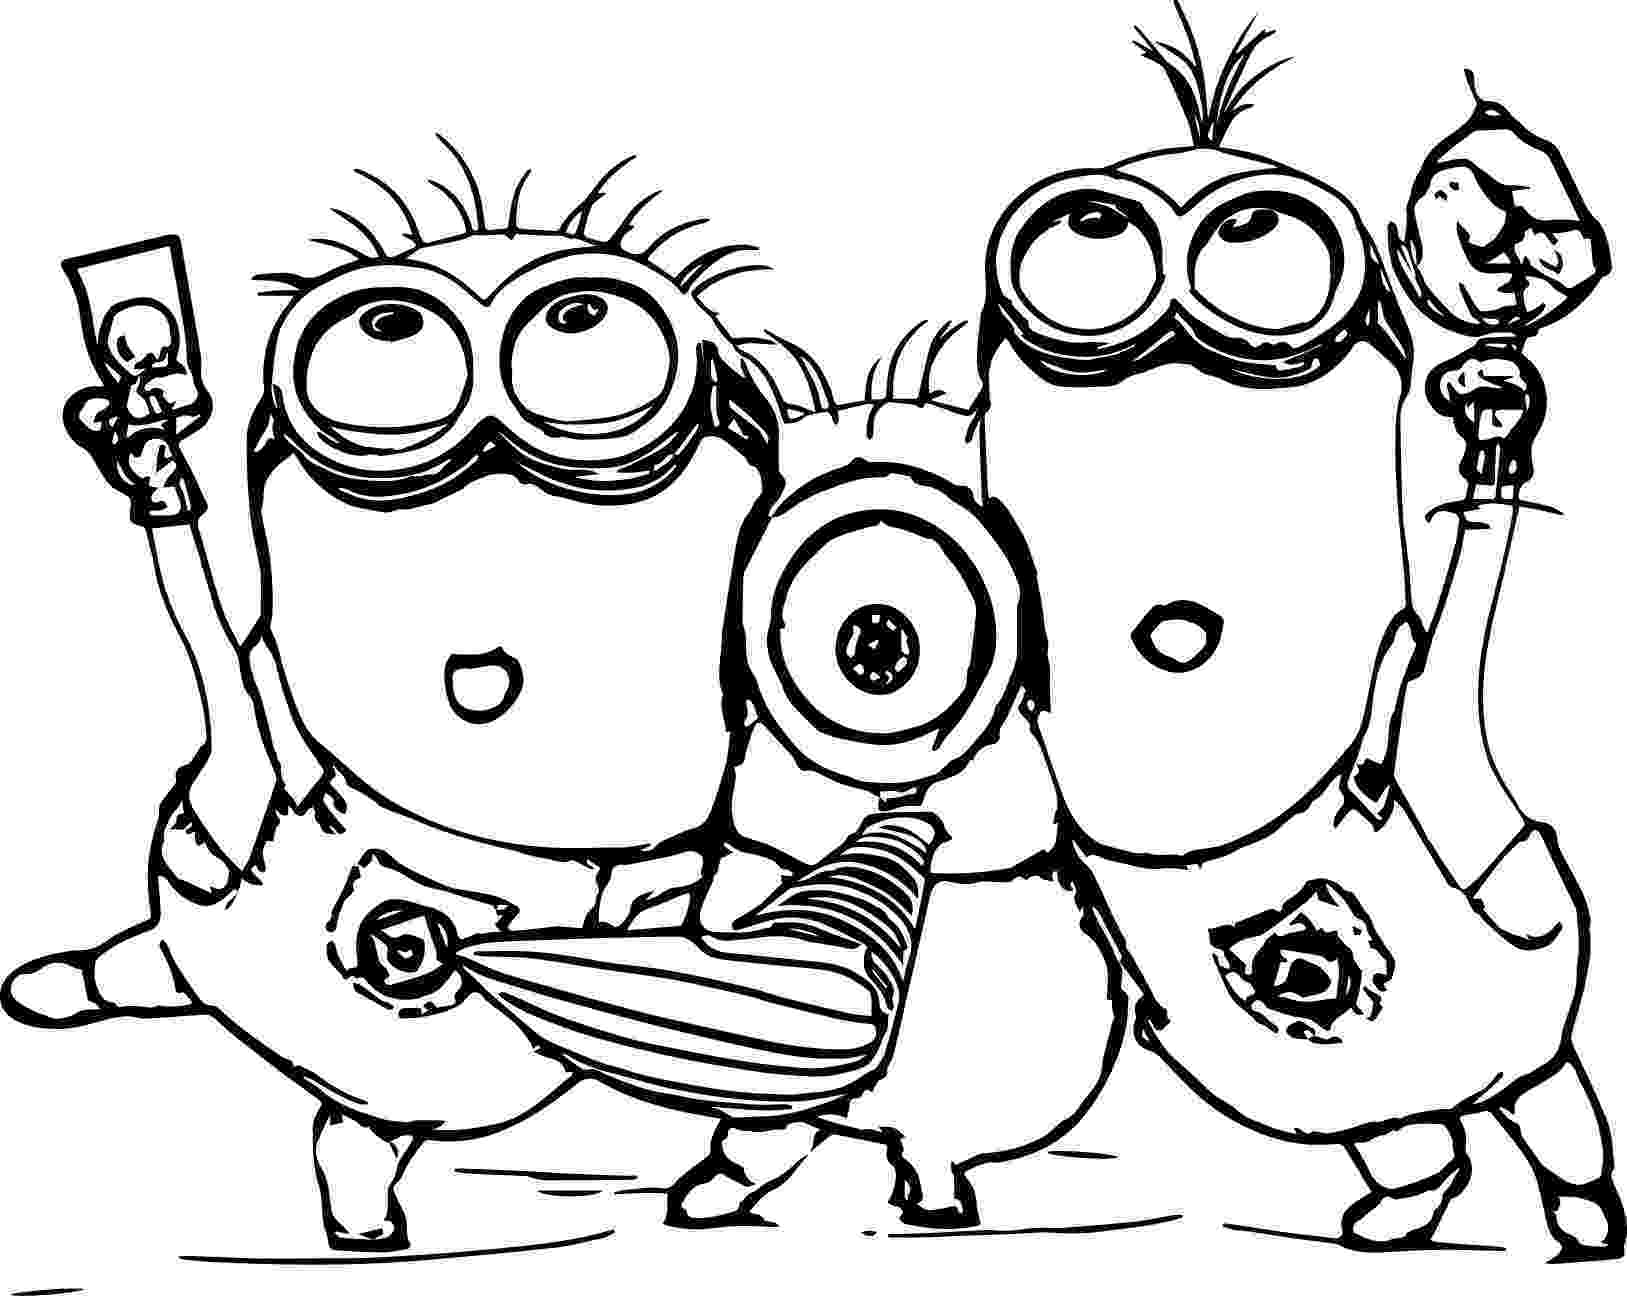 minions to color minion coloring pages best coloring pages for kids minions color to 1 2